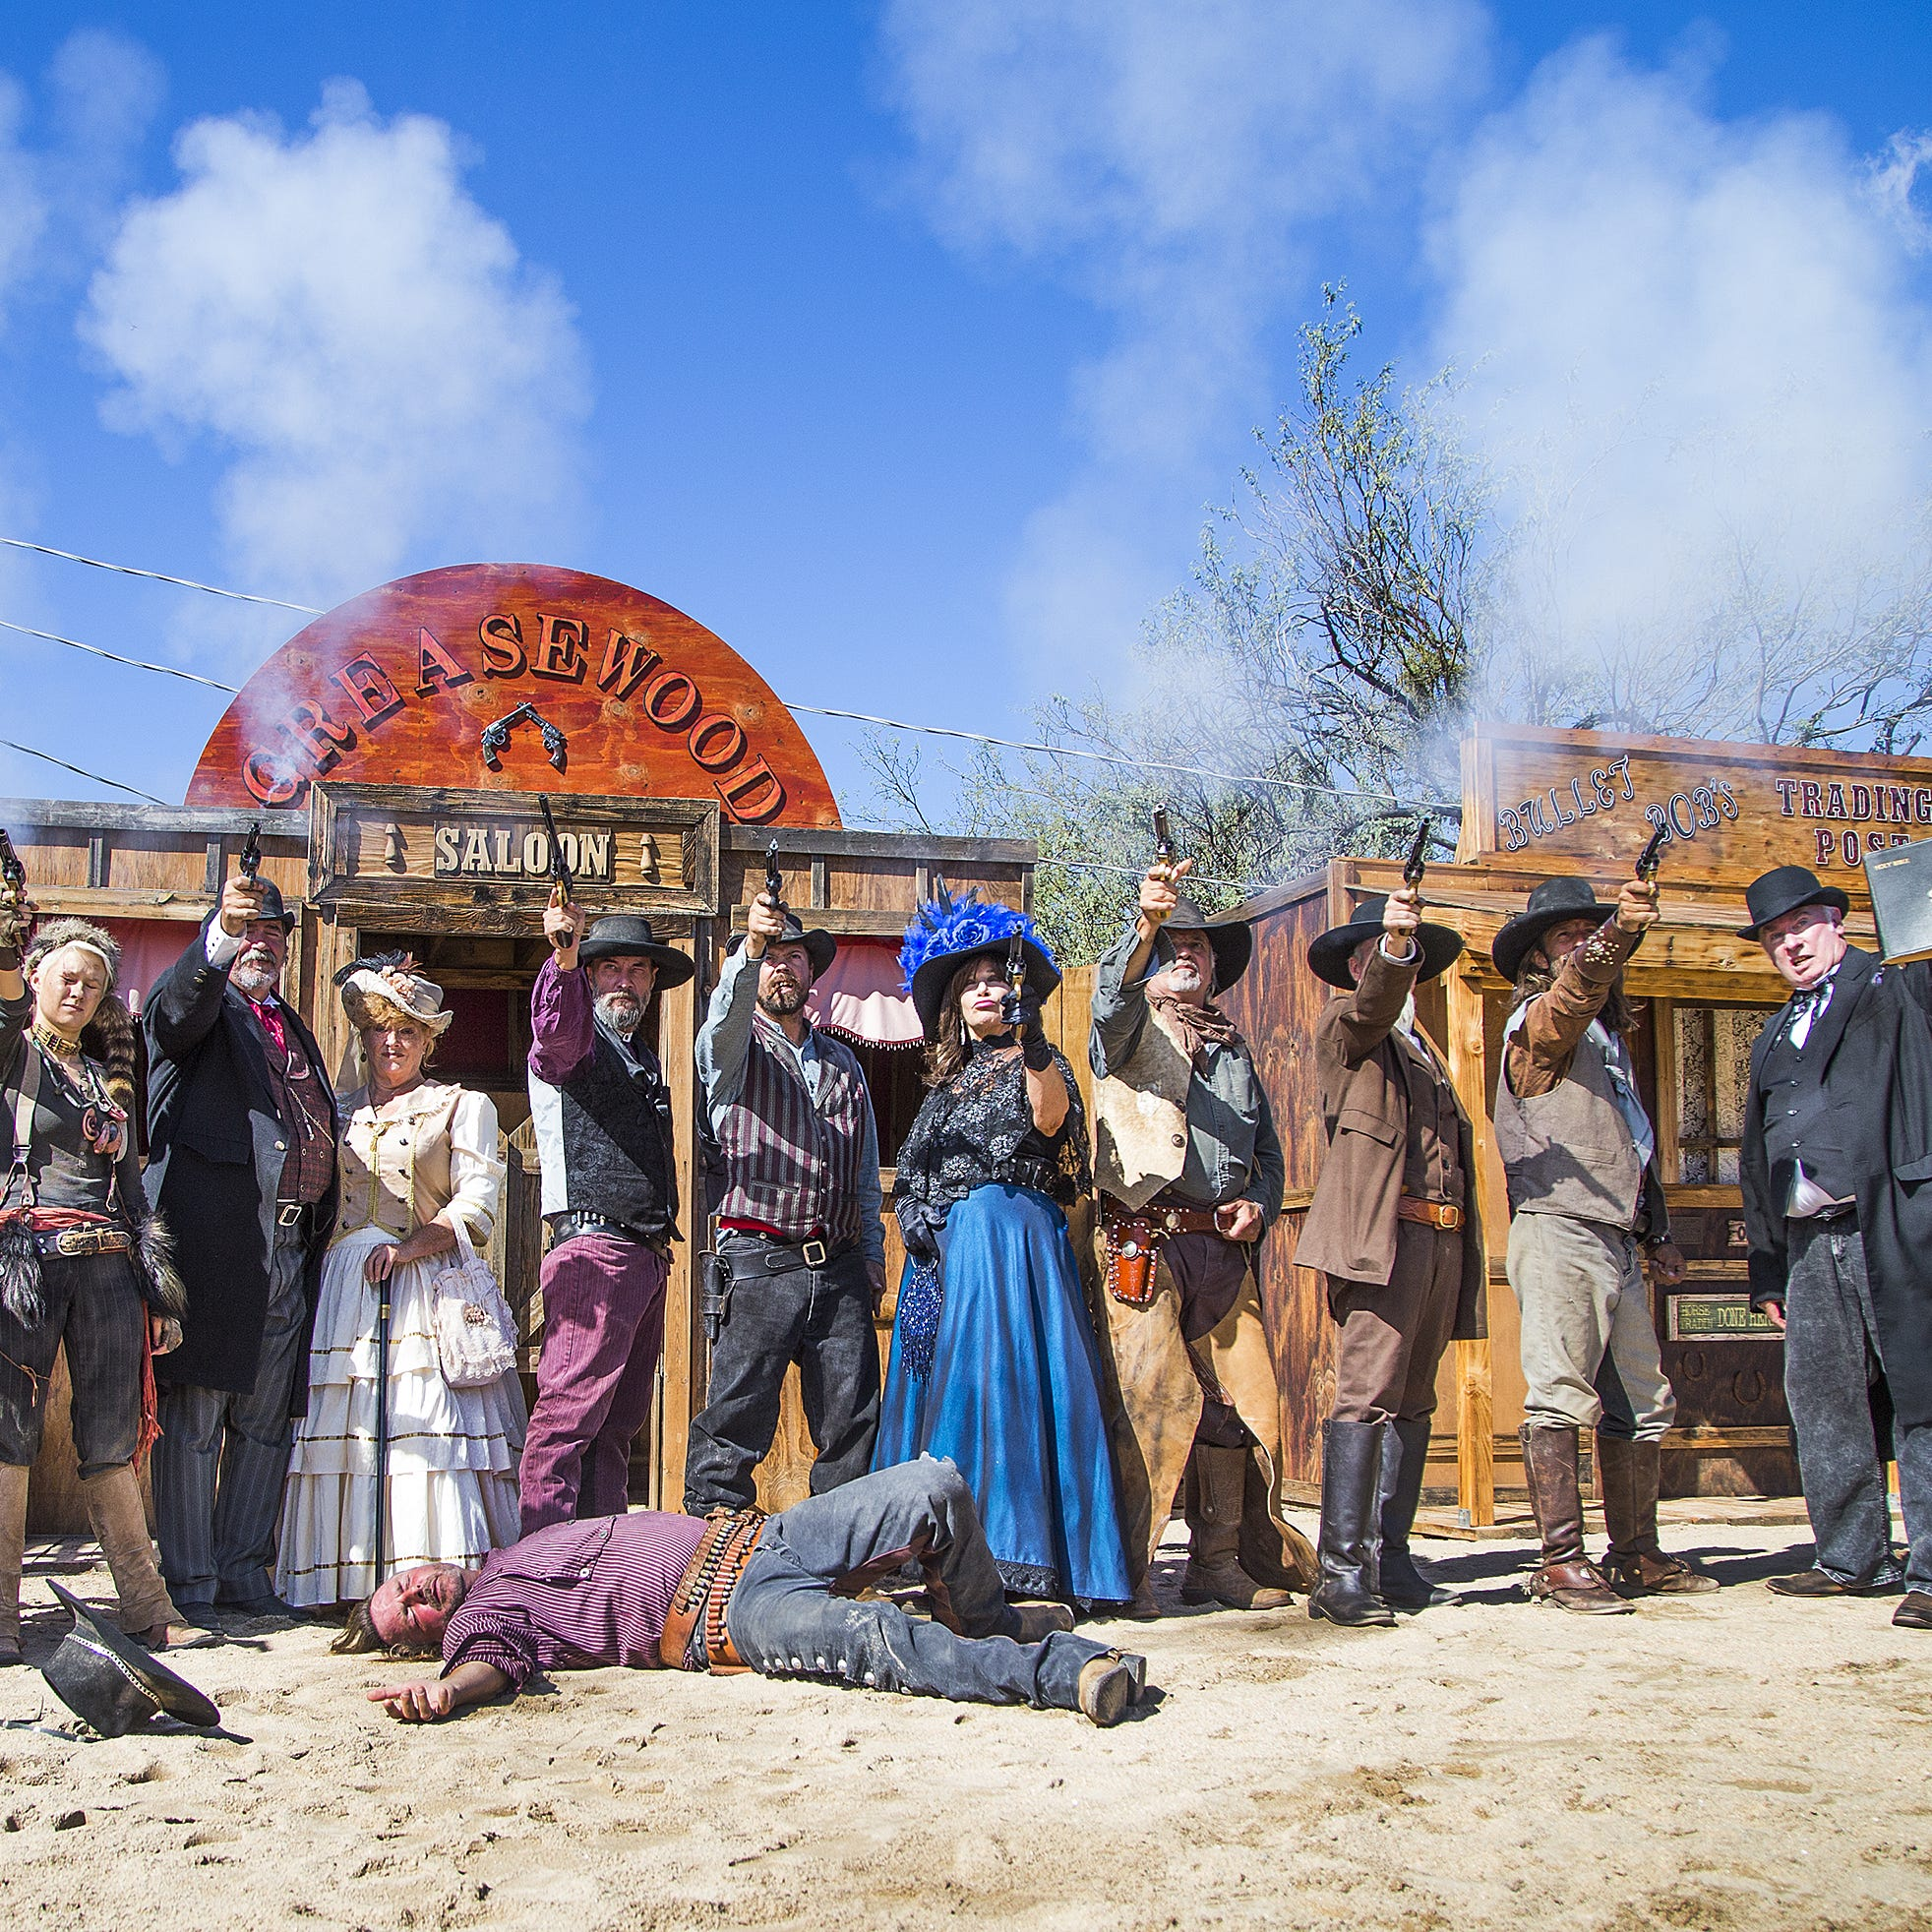 Cave Creek's Frontier Town: Come for the gunfights, stay for the ghost stories